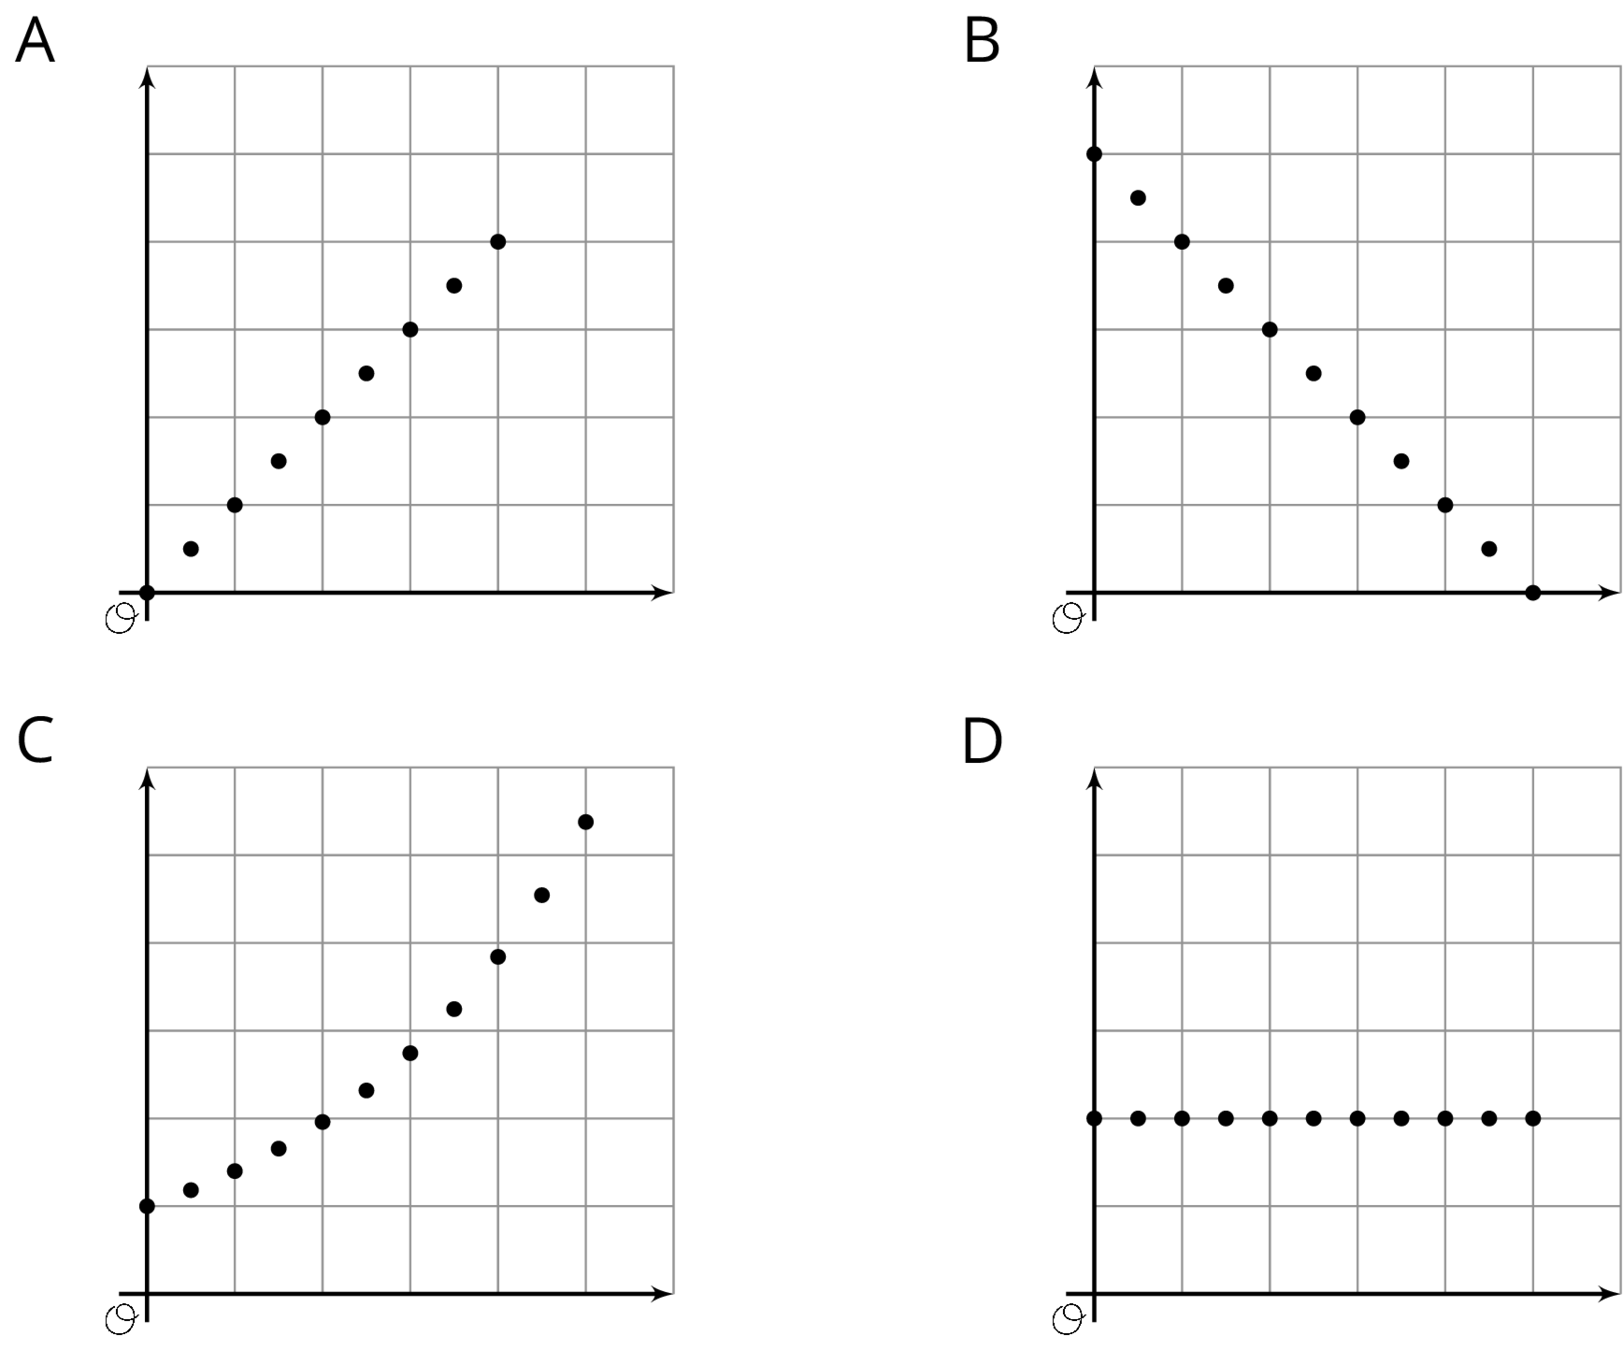 """Four coordinate planes labeled """"A"""", """"B"""", """"C"""", and """"D,"""" each with the origin labeled """"O."""" For graph """"A"""", nine points are graphed and the trend of the data points move linearly upward and to the right, where the first point begins at the origin. For graph """"B"""", 11 points are graphed and the trend of the data points move linearly downward and to the right, where the first point begins on the vertical axis, high above the origin.  For graph """"C"""", 11 points are graphed and the trend of the data points move in a curve that moves upward and to the right, where the first point begins on the vertical axis, slightly above the origin.  For graph """"D"""", 11 points are graphed and the trend of the data points move horizontally and to the right, where the first point begins on the vertical axis and slightly above the origin."""